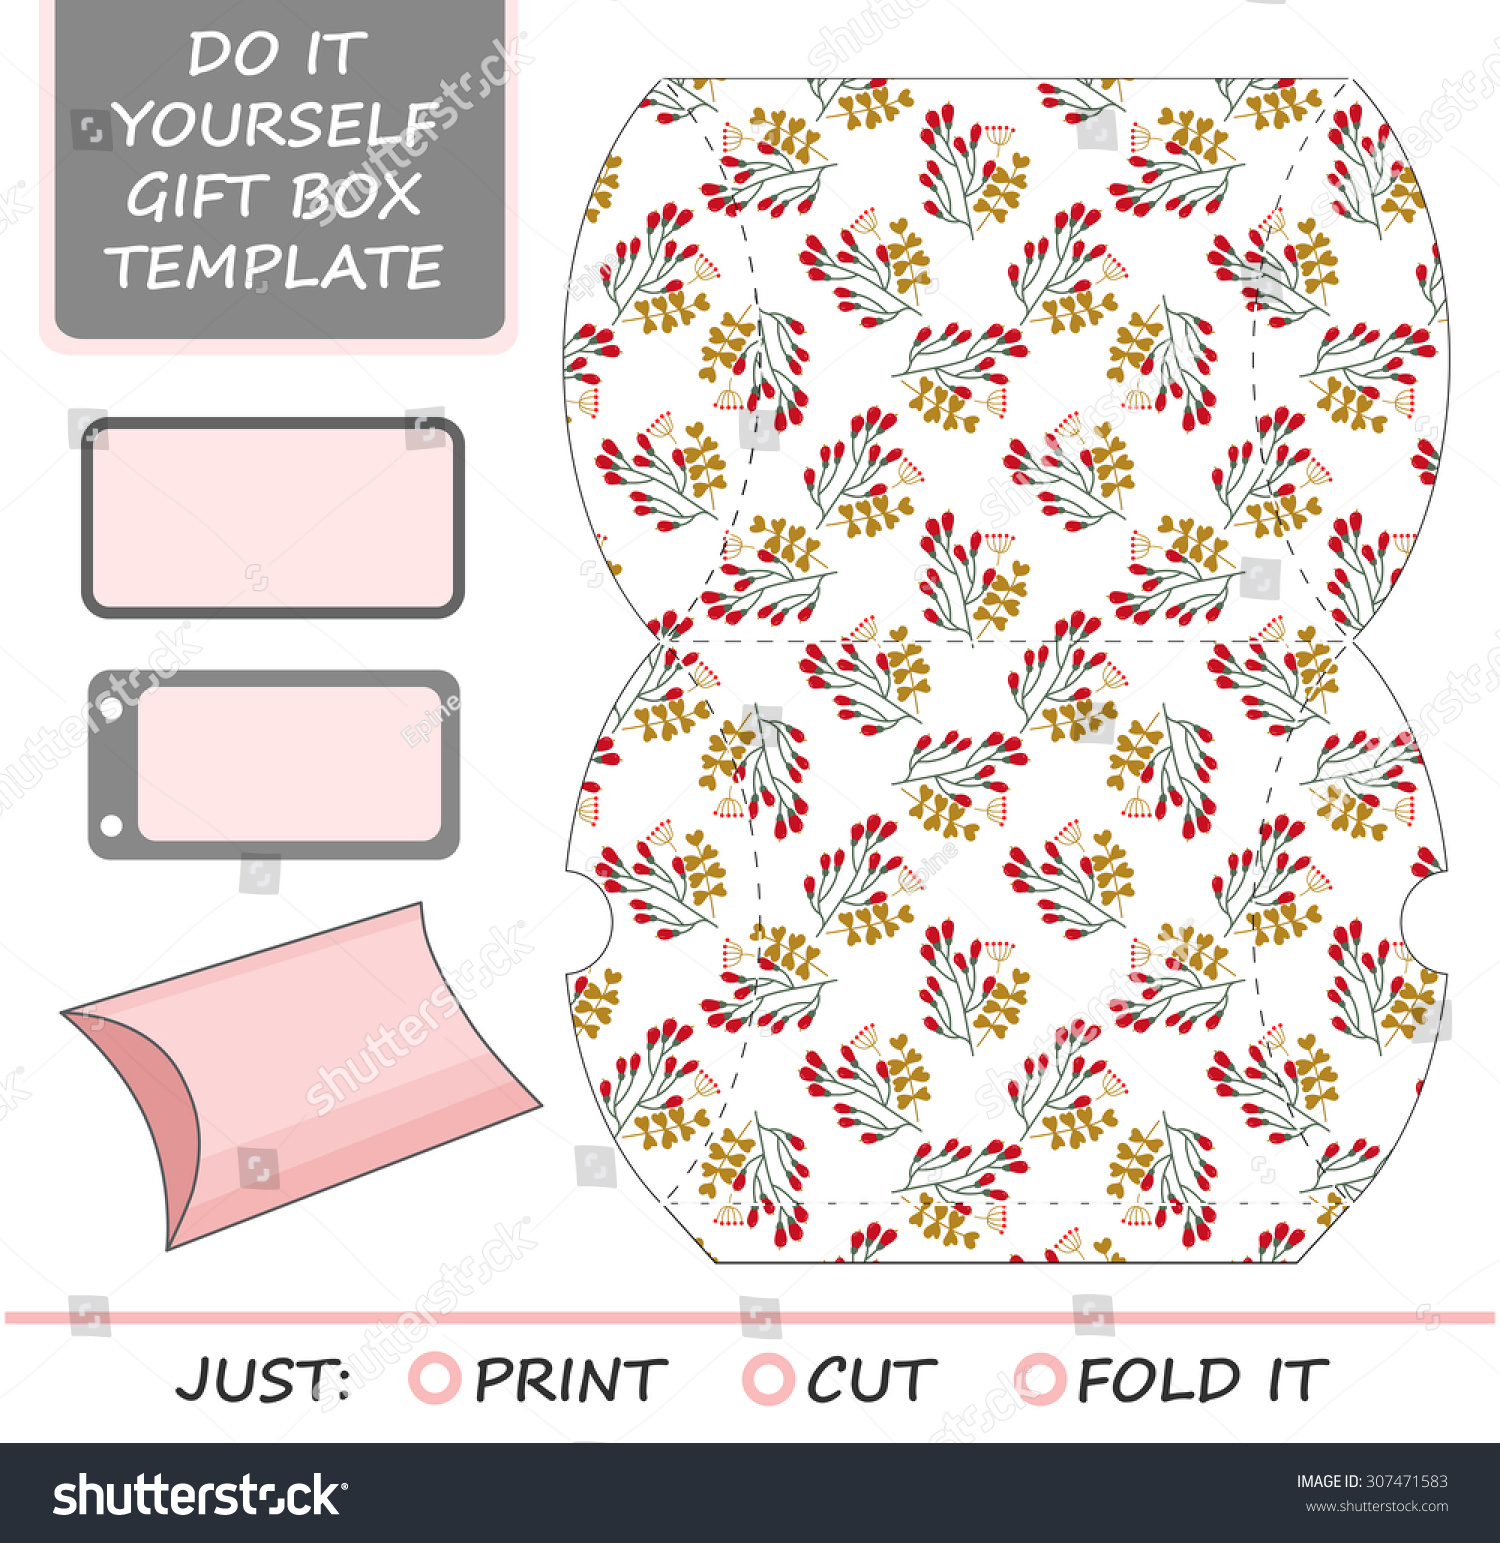 favor gift box die cut box stock vector shutterstock favor gift box die cut box template winter floral pattern great for